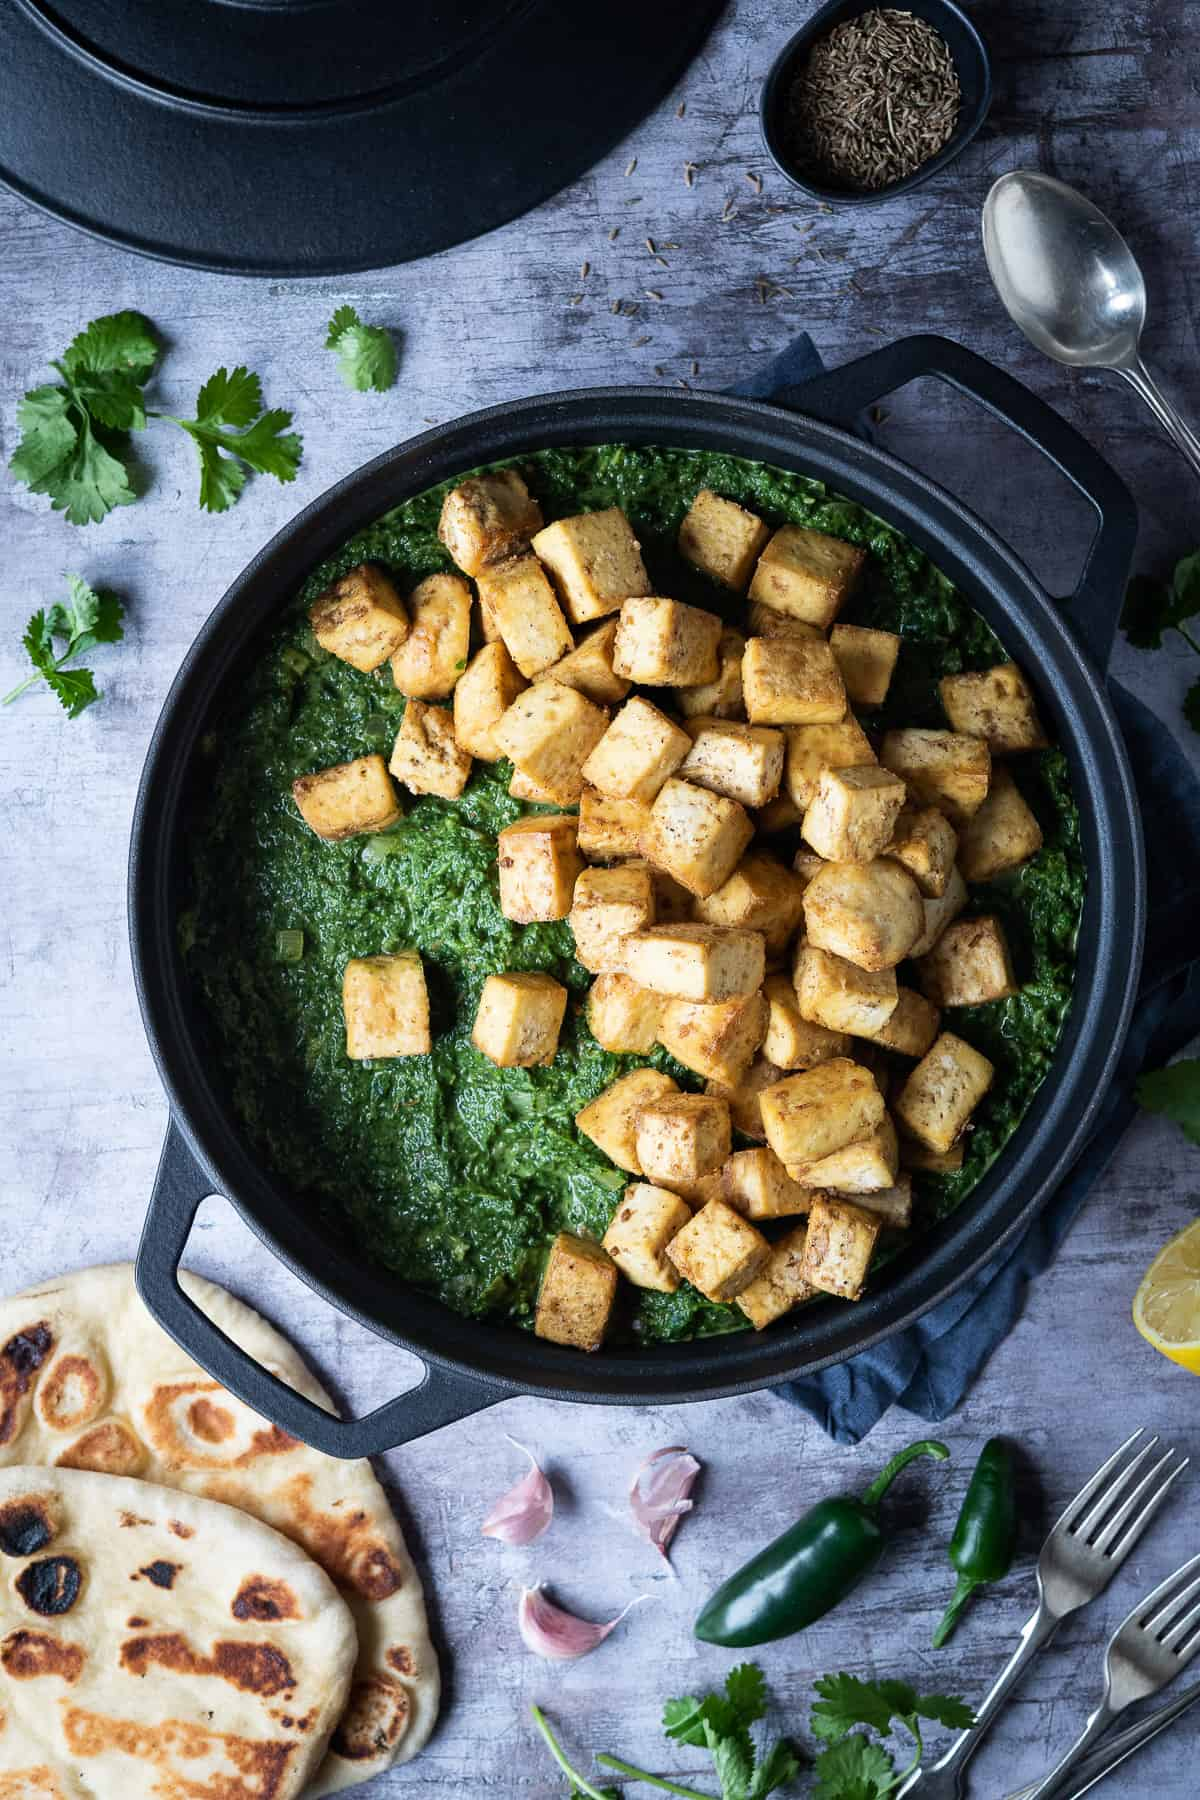 Cubes of tofu 'paneer' on top of spinach sauce in a black saucepan.